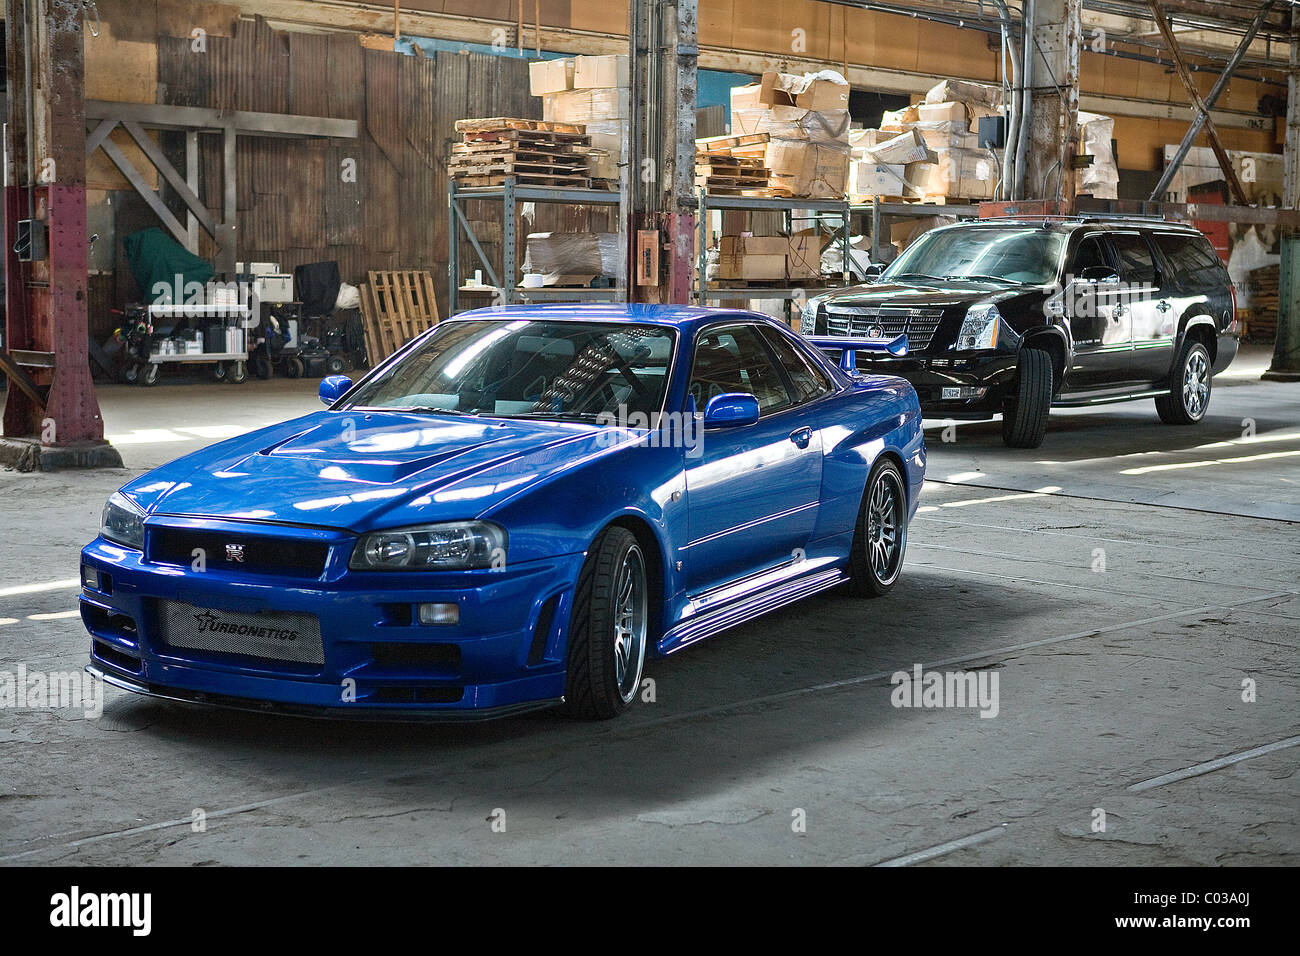 1998 NISSAN SKYLINE ER34 FAST & FURIOUS; THE FAST AND THE FURIOUS 4 (2009) Stock Photo